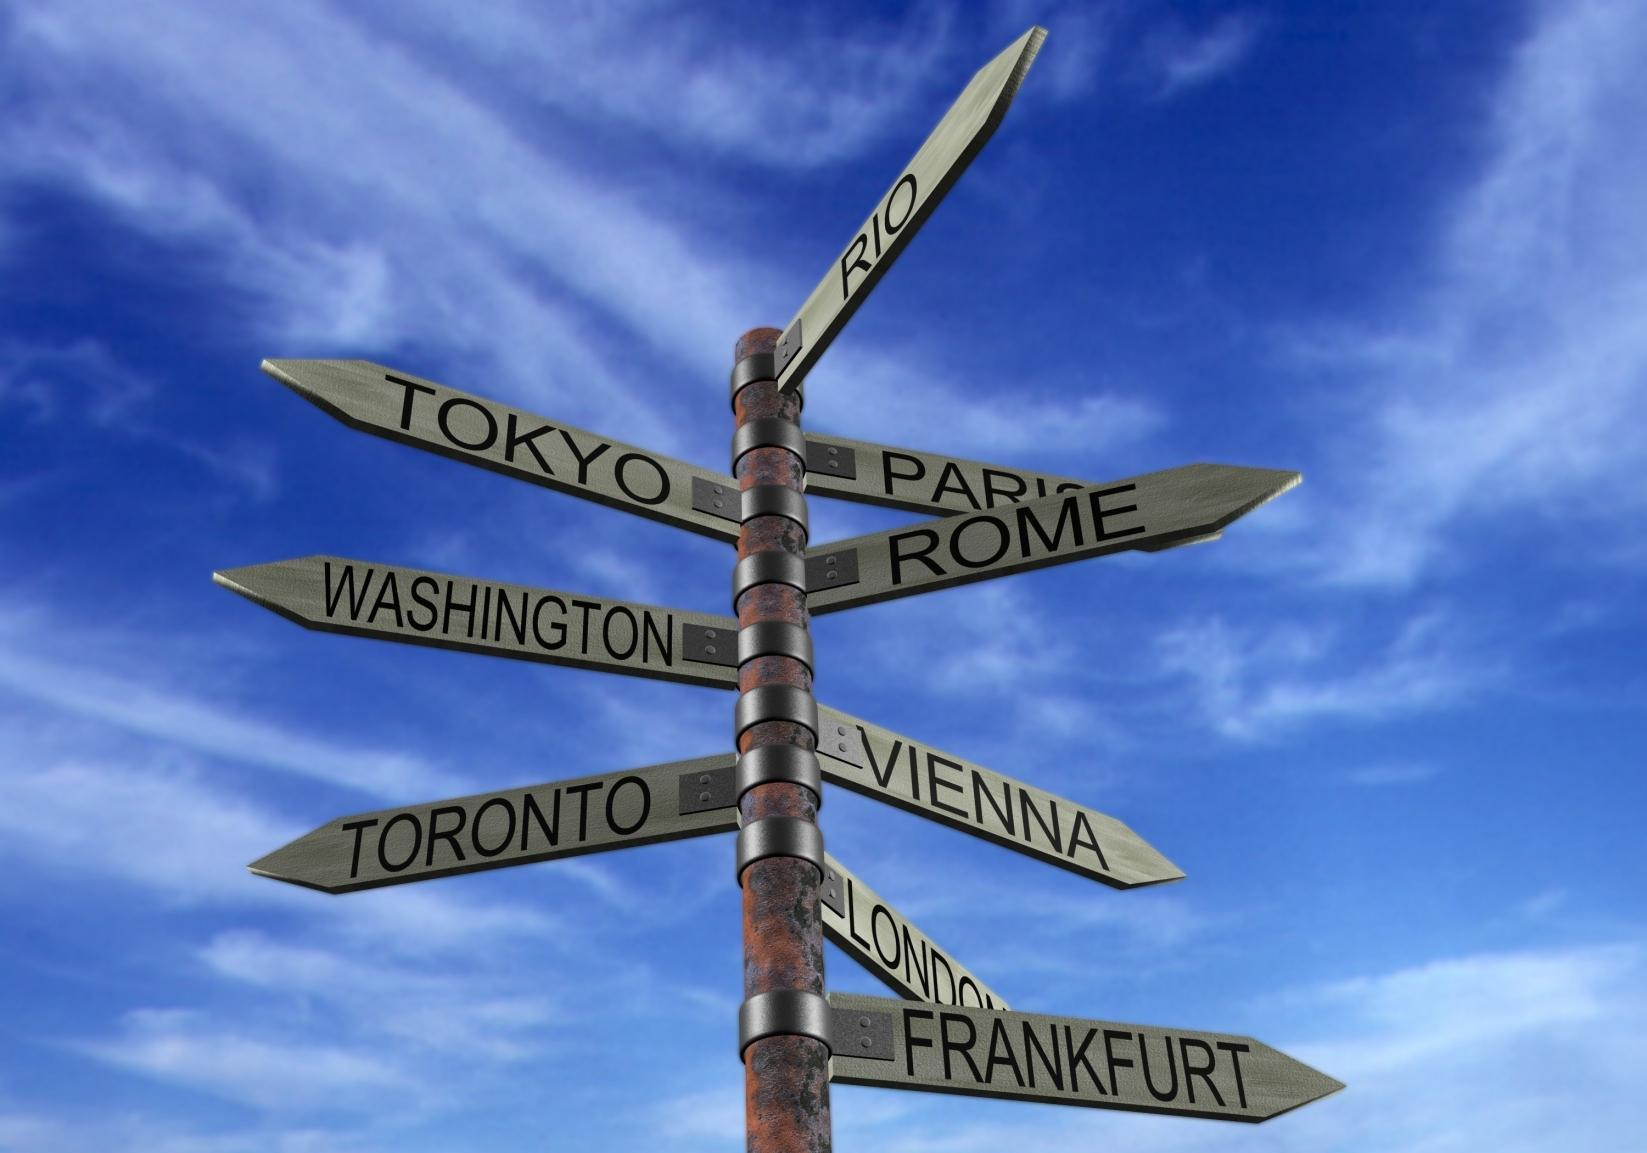 What Are Your Top Five Travel Must-Go's?